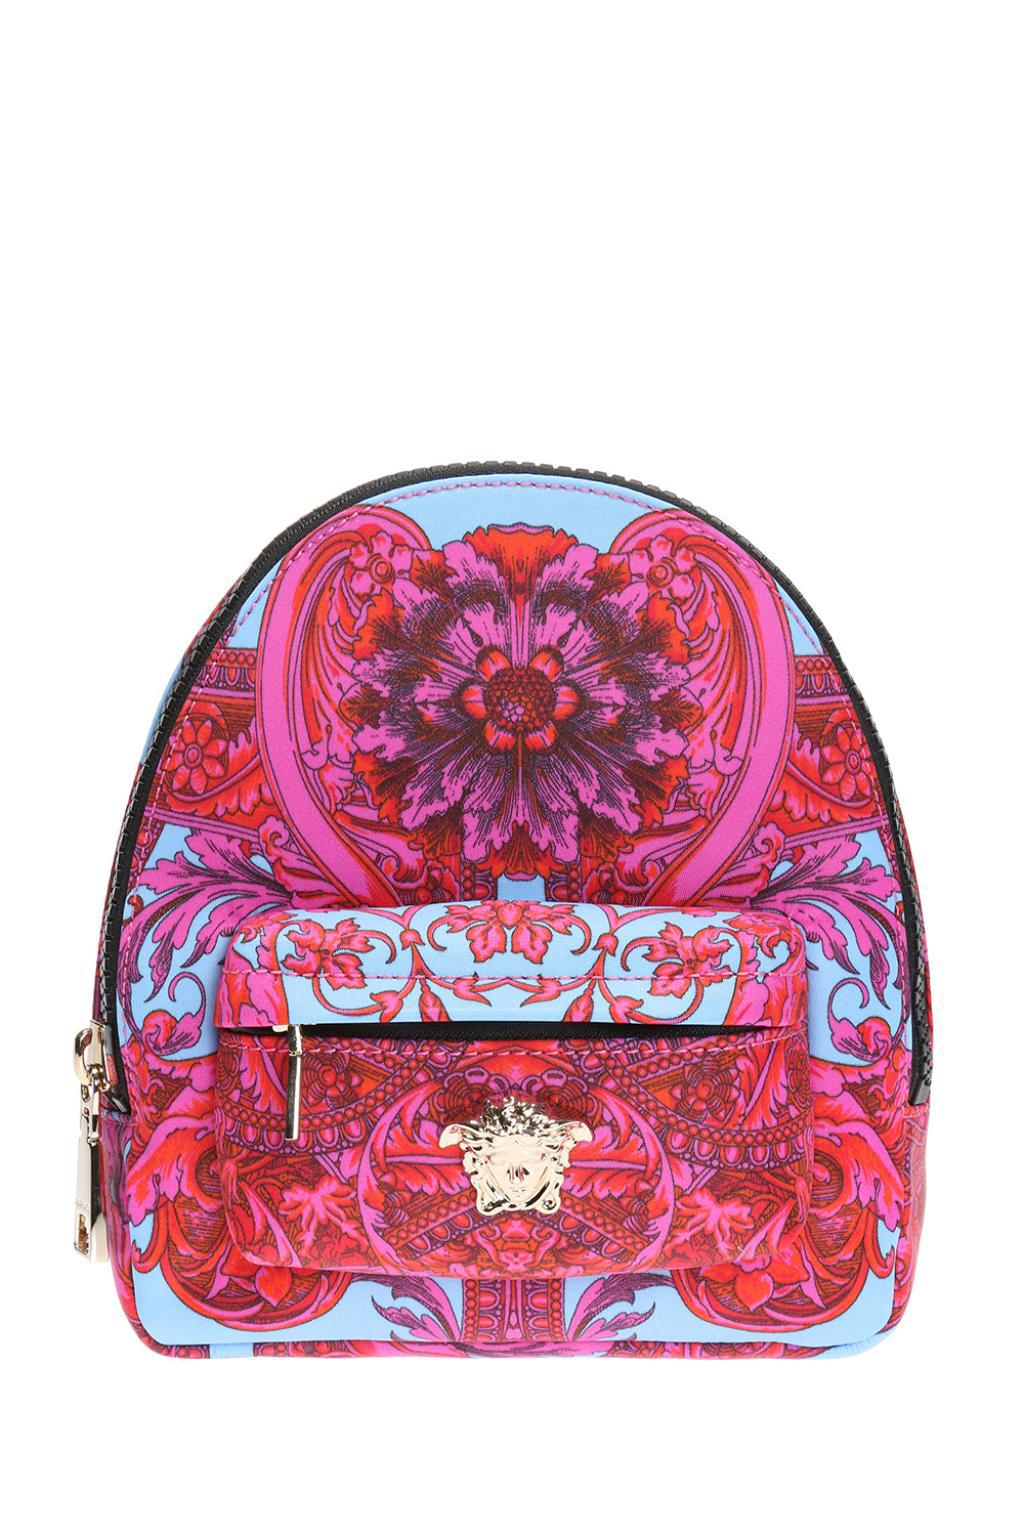 3e6885ccef Pink Versace Backpack Purse- Fenix Toulouse Handball